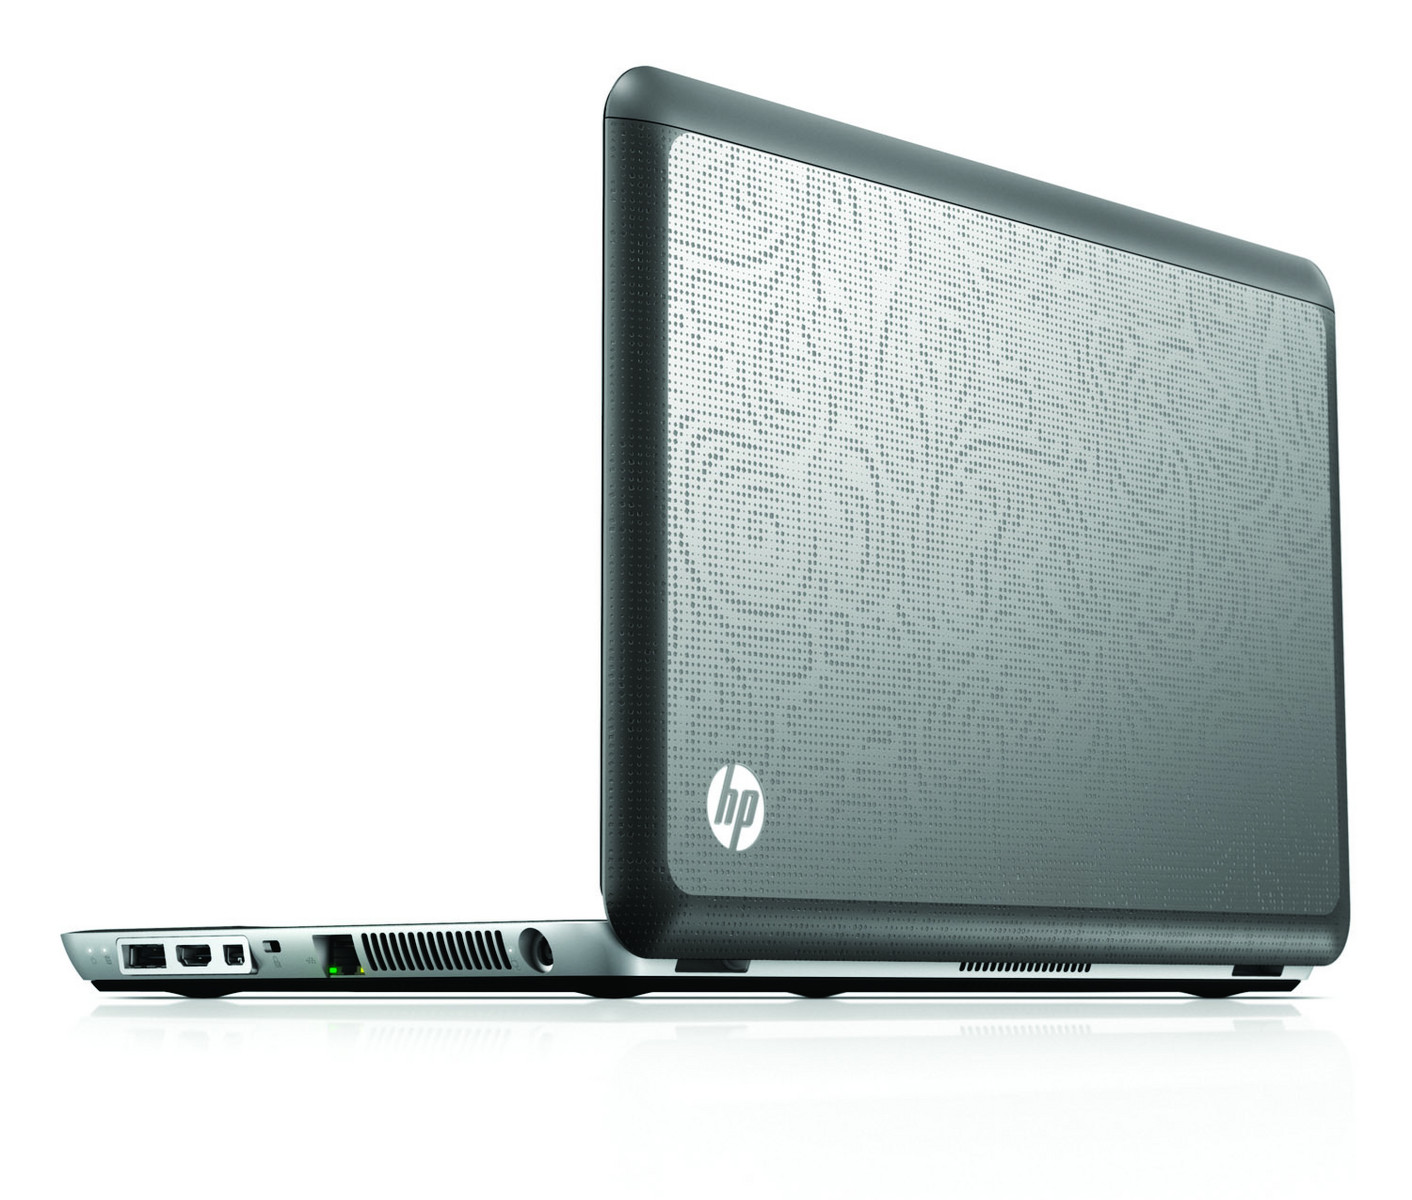 HP Envy 14-1010nr Notebook IDT Audio Driver (2019)